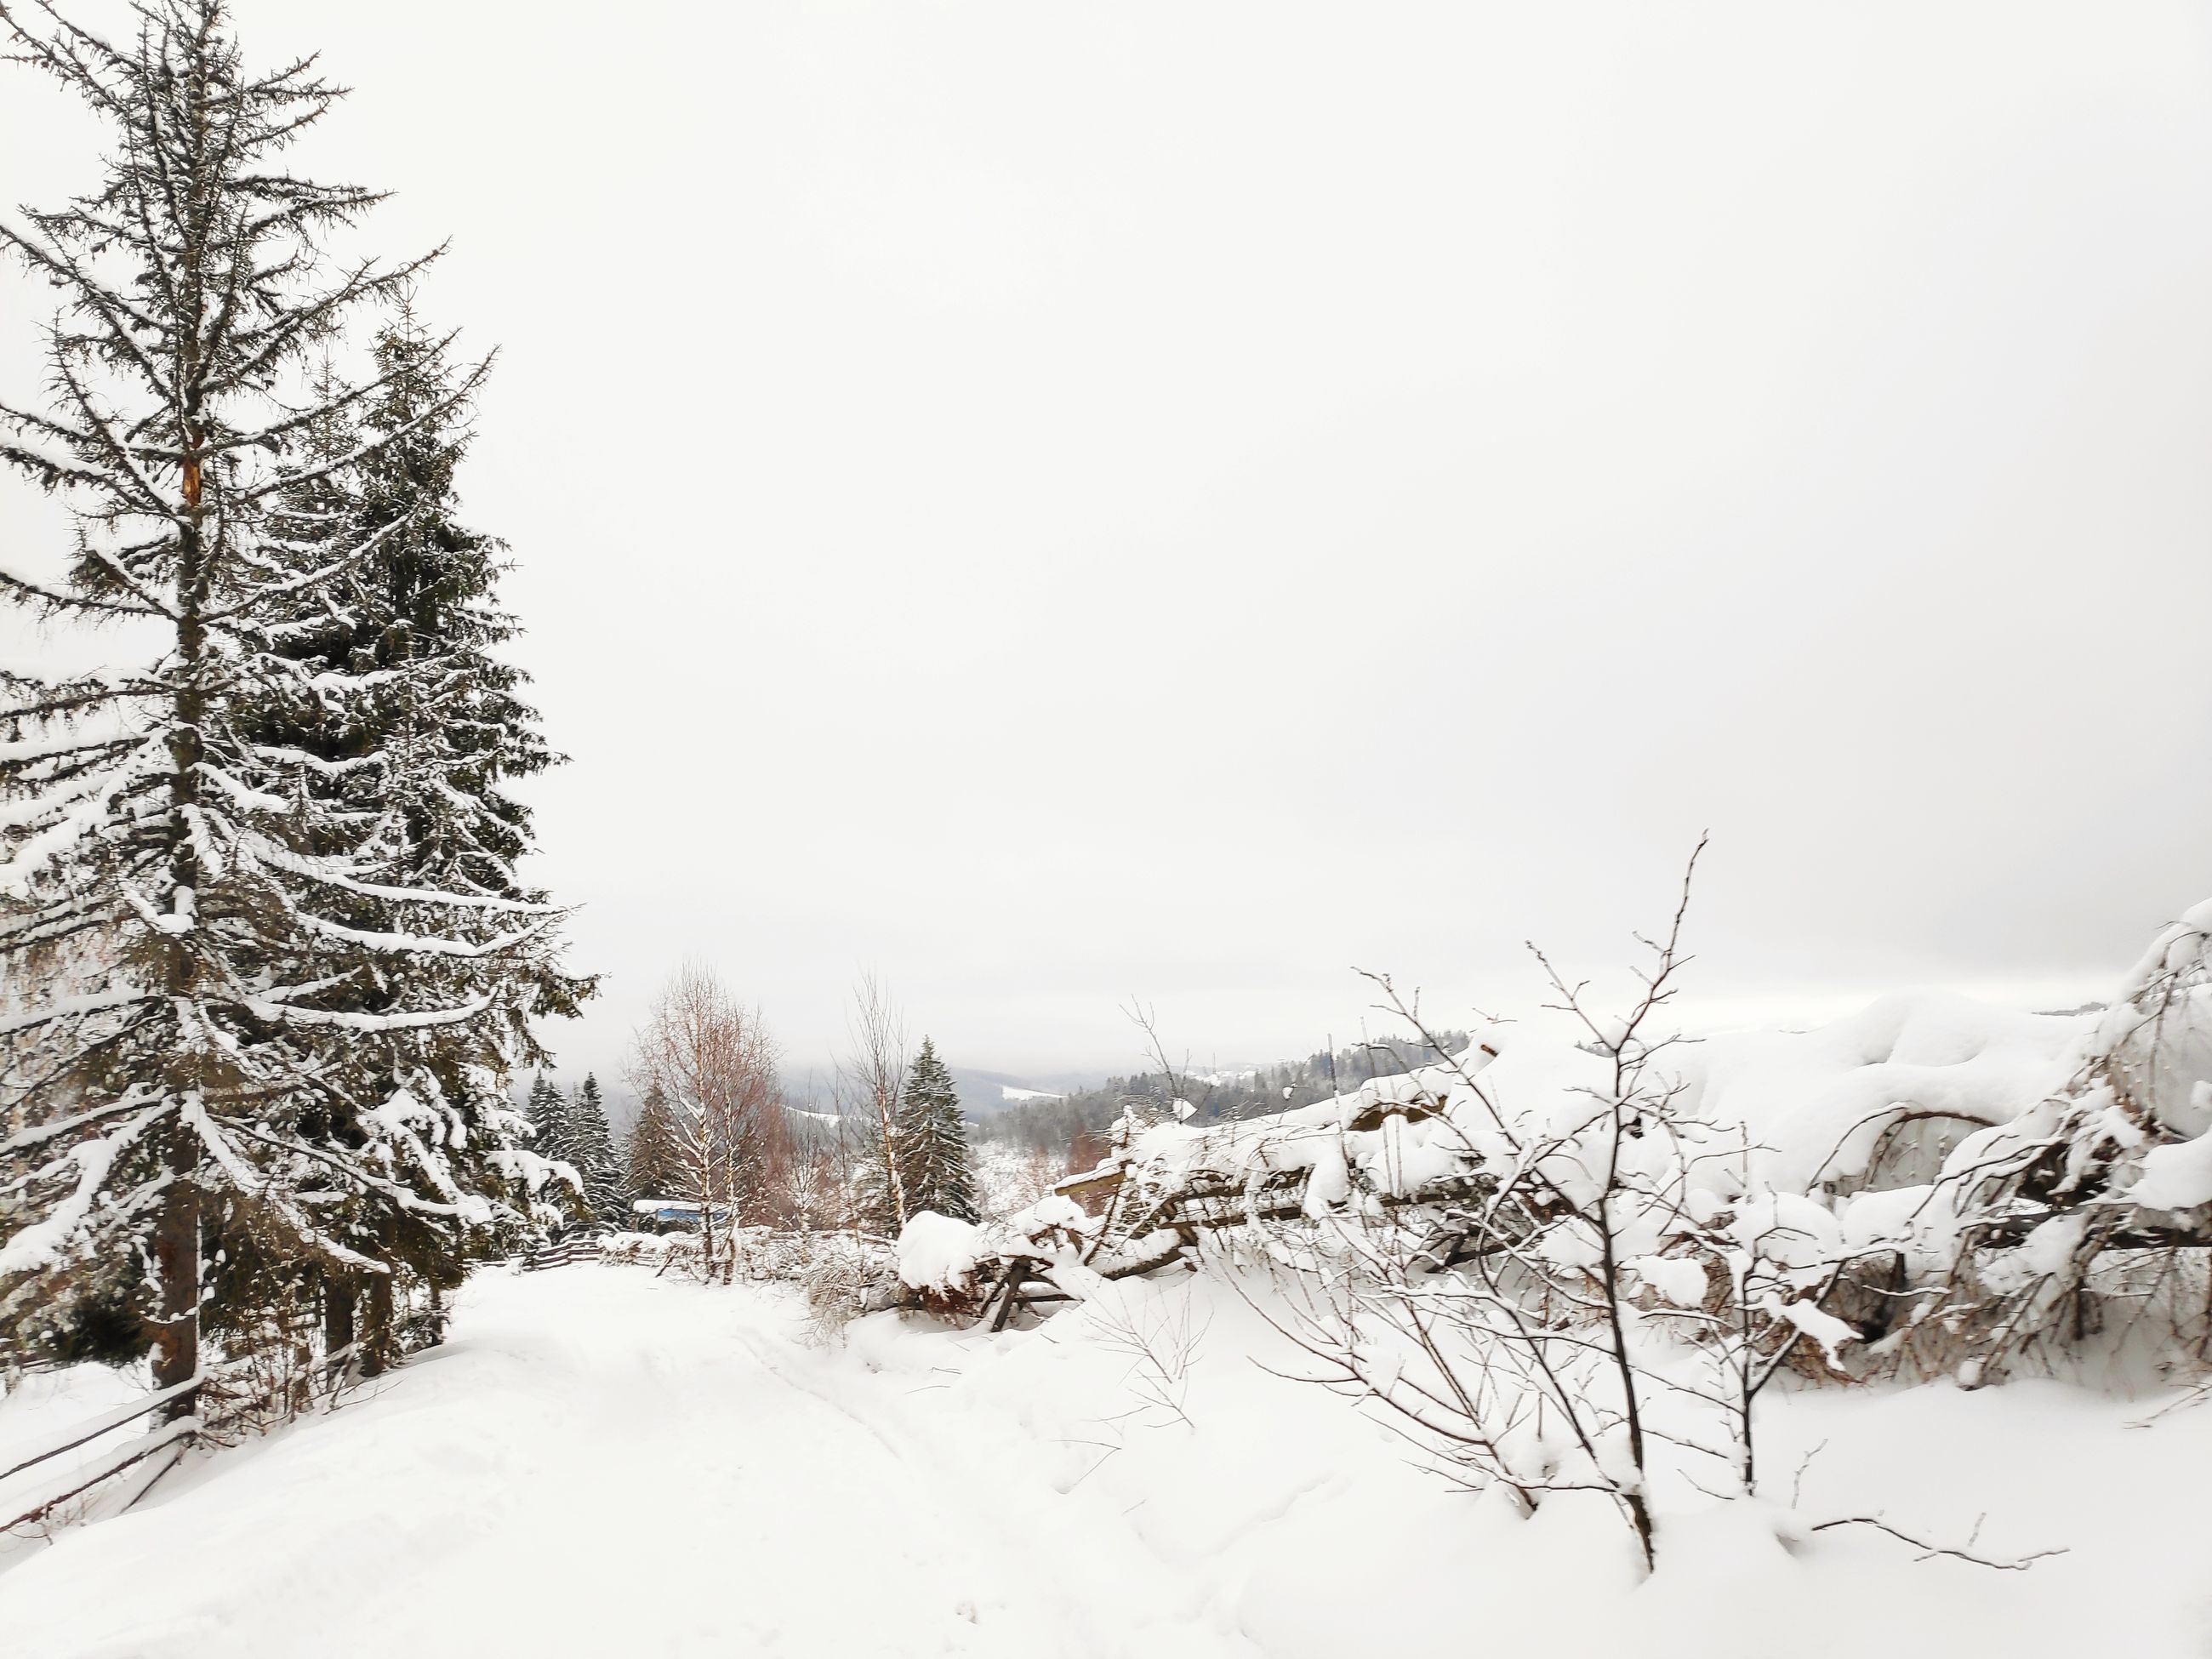 winter, snow, cold temperature, tree, plant, sky, beauty in nature, tranquility, covering, tranquil scene, scenics - nature, nature, no people, white color, land, clear sky, environment, day, non-urban scene, outdoors, snowcapped mountain, coniferous tree